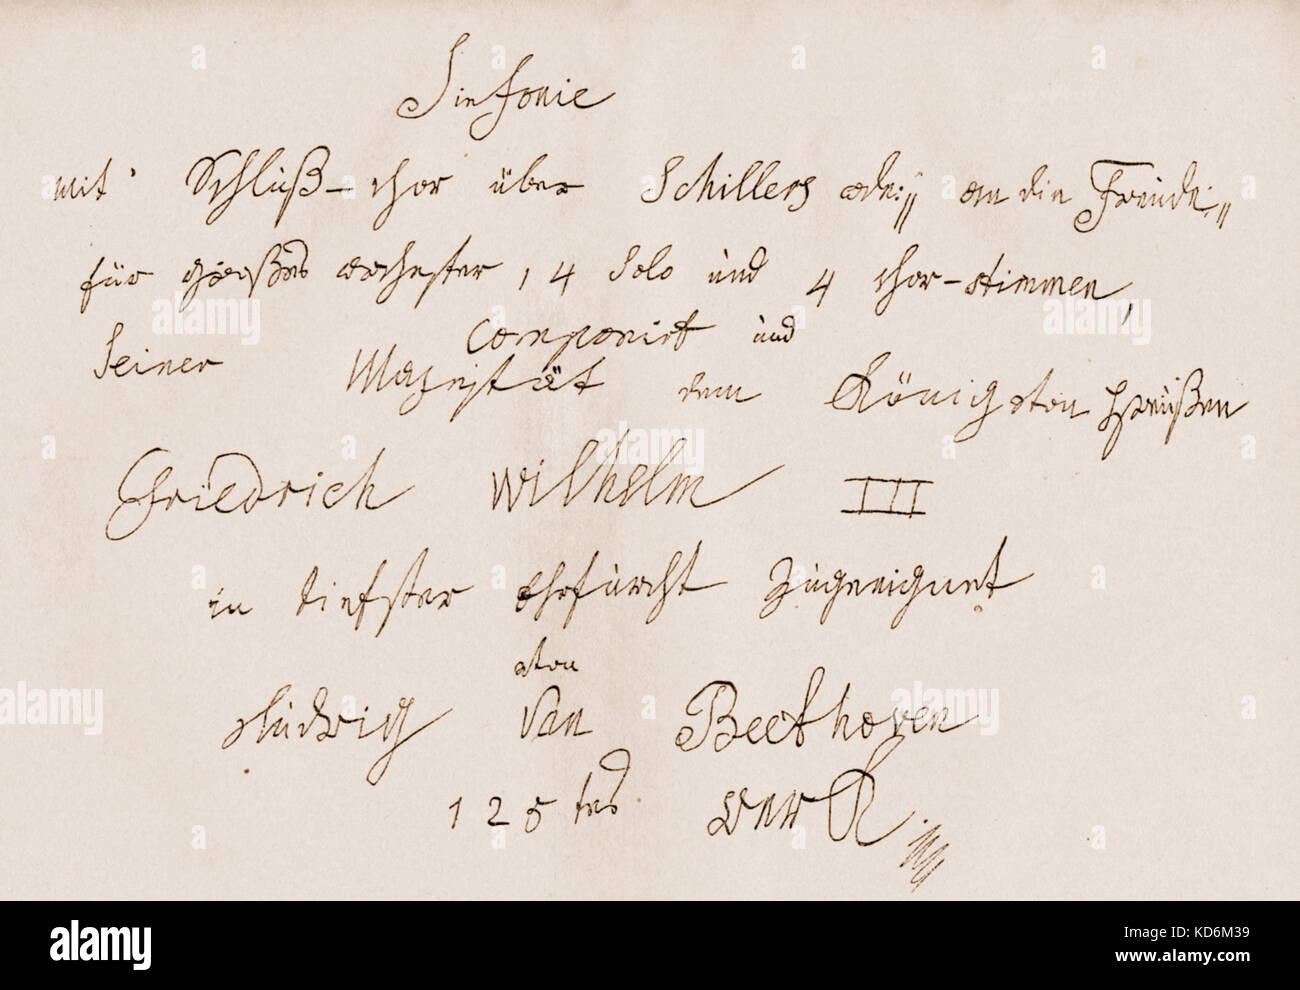 Ludwig van Beethoven dedication note for 9th Symphony made out to King Friedrich Wilhelm III of Prussia, in the - Stock Image